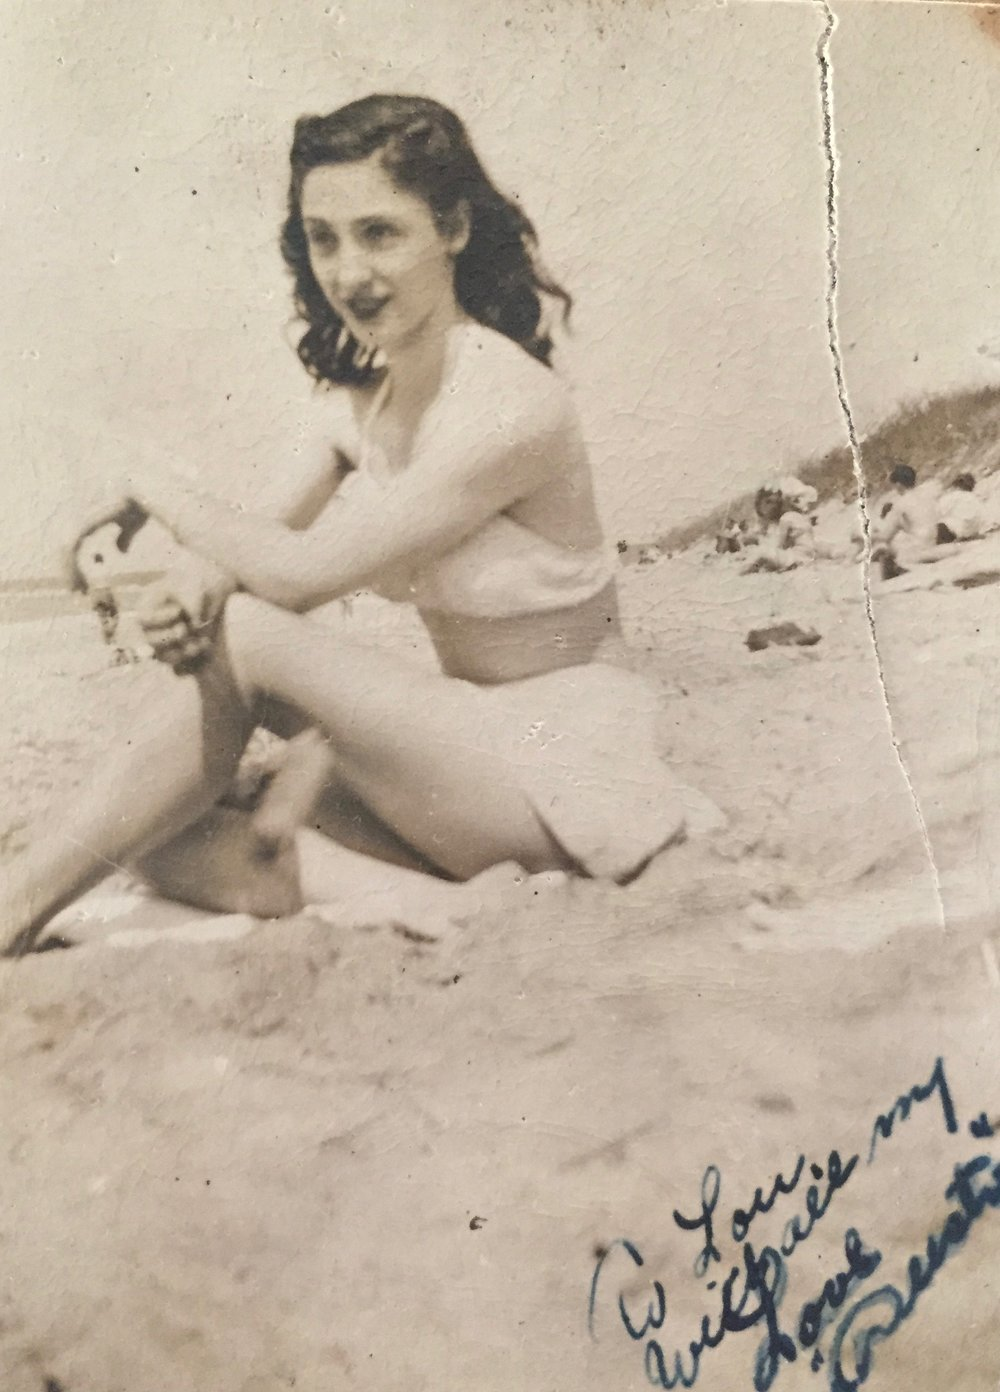 Augusta at the beach, late 1940s early 1950s.